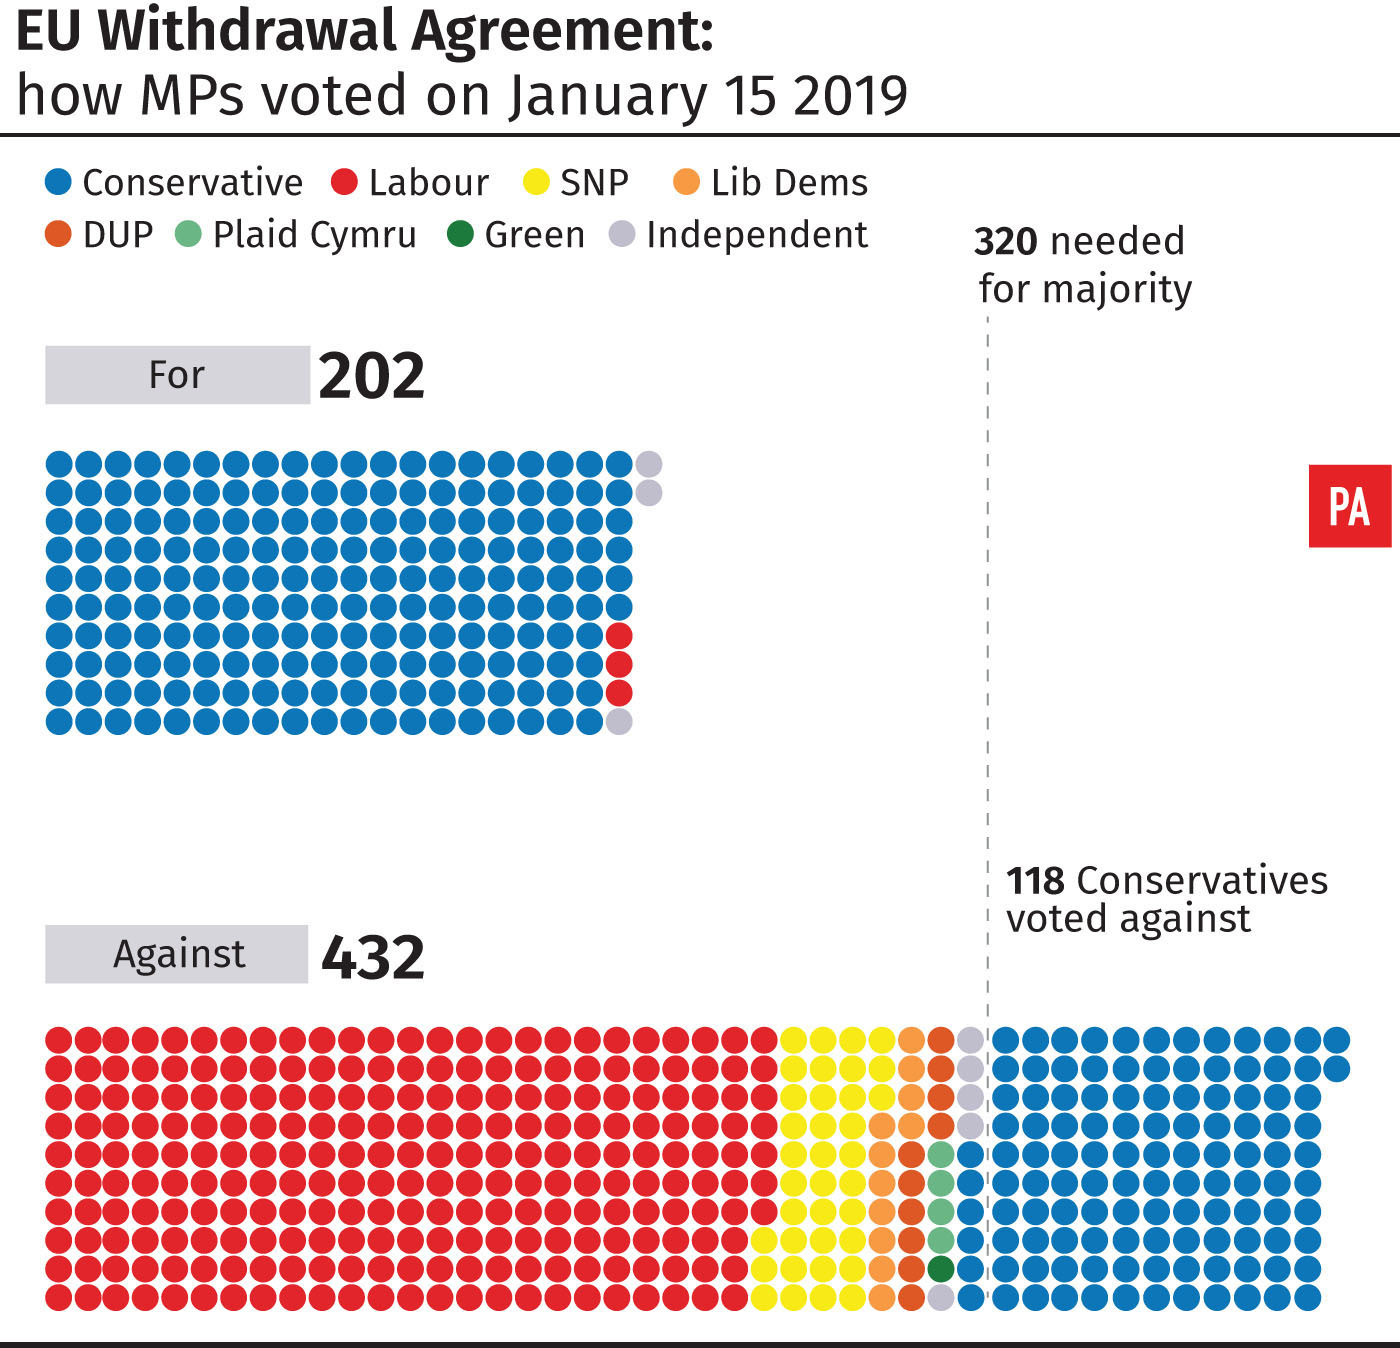 European Union  rules out renegotiation of Brexit withdrawal agreement